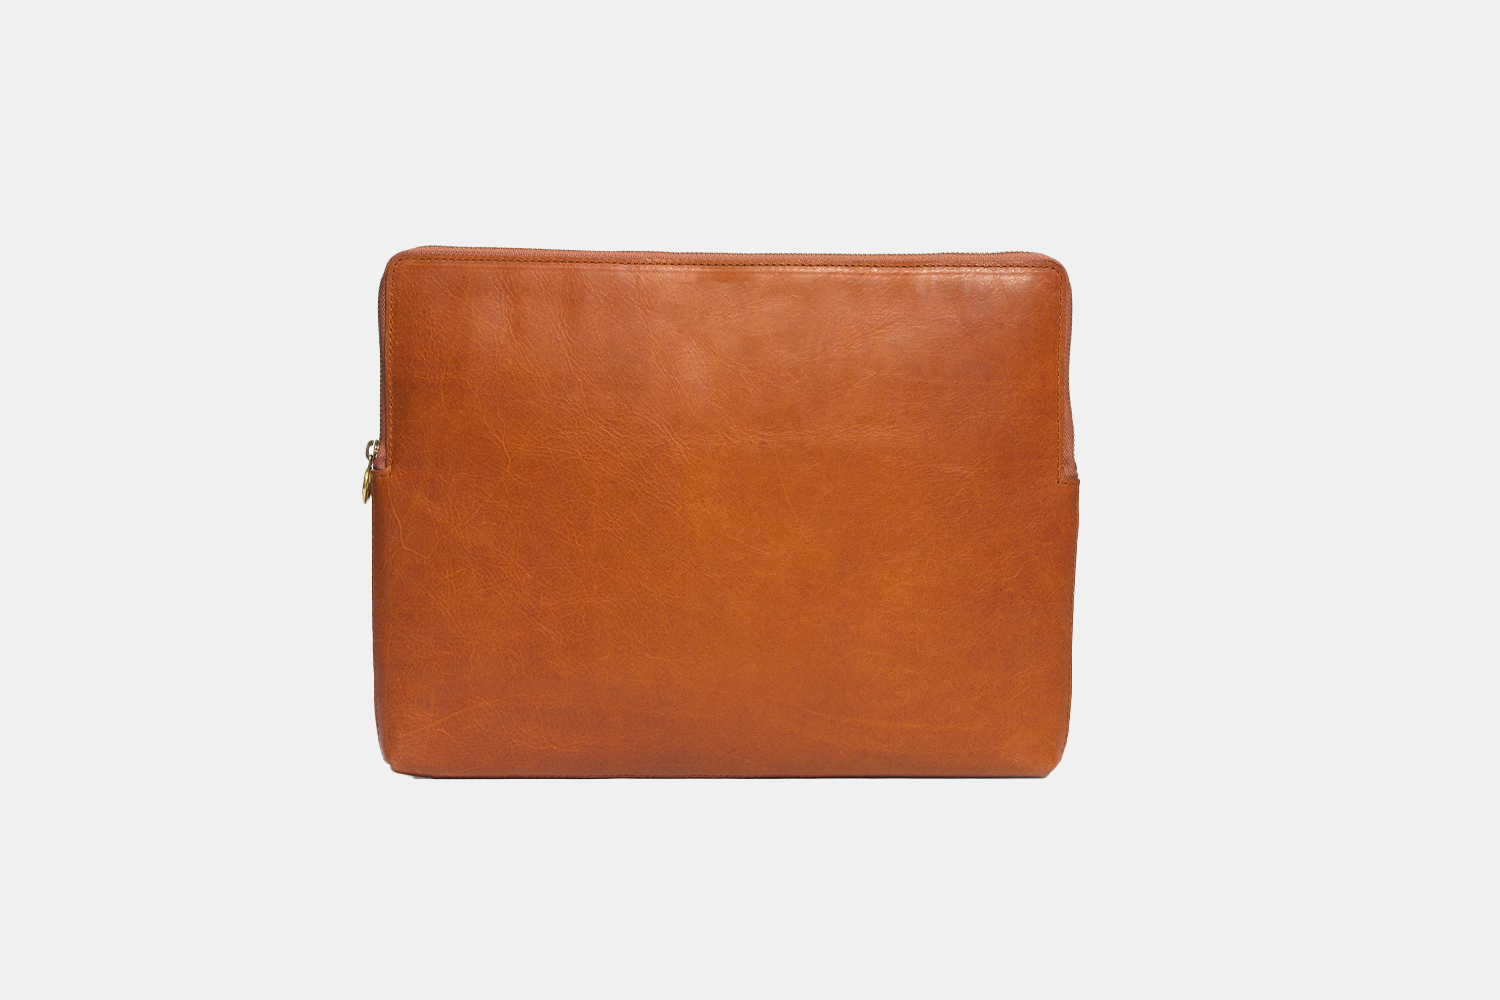 The Madewell Leather Laptop Case